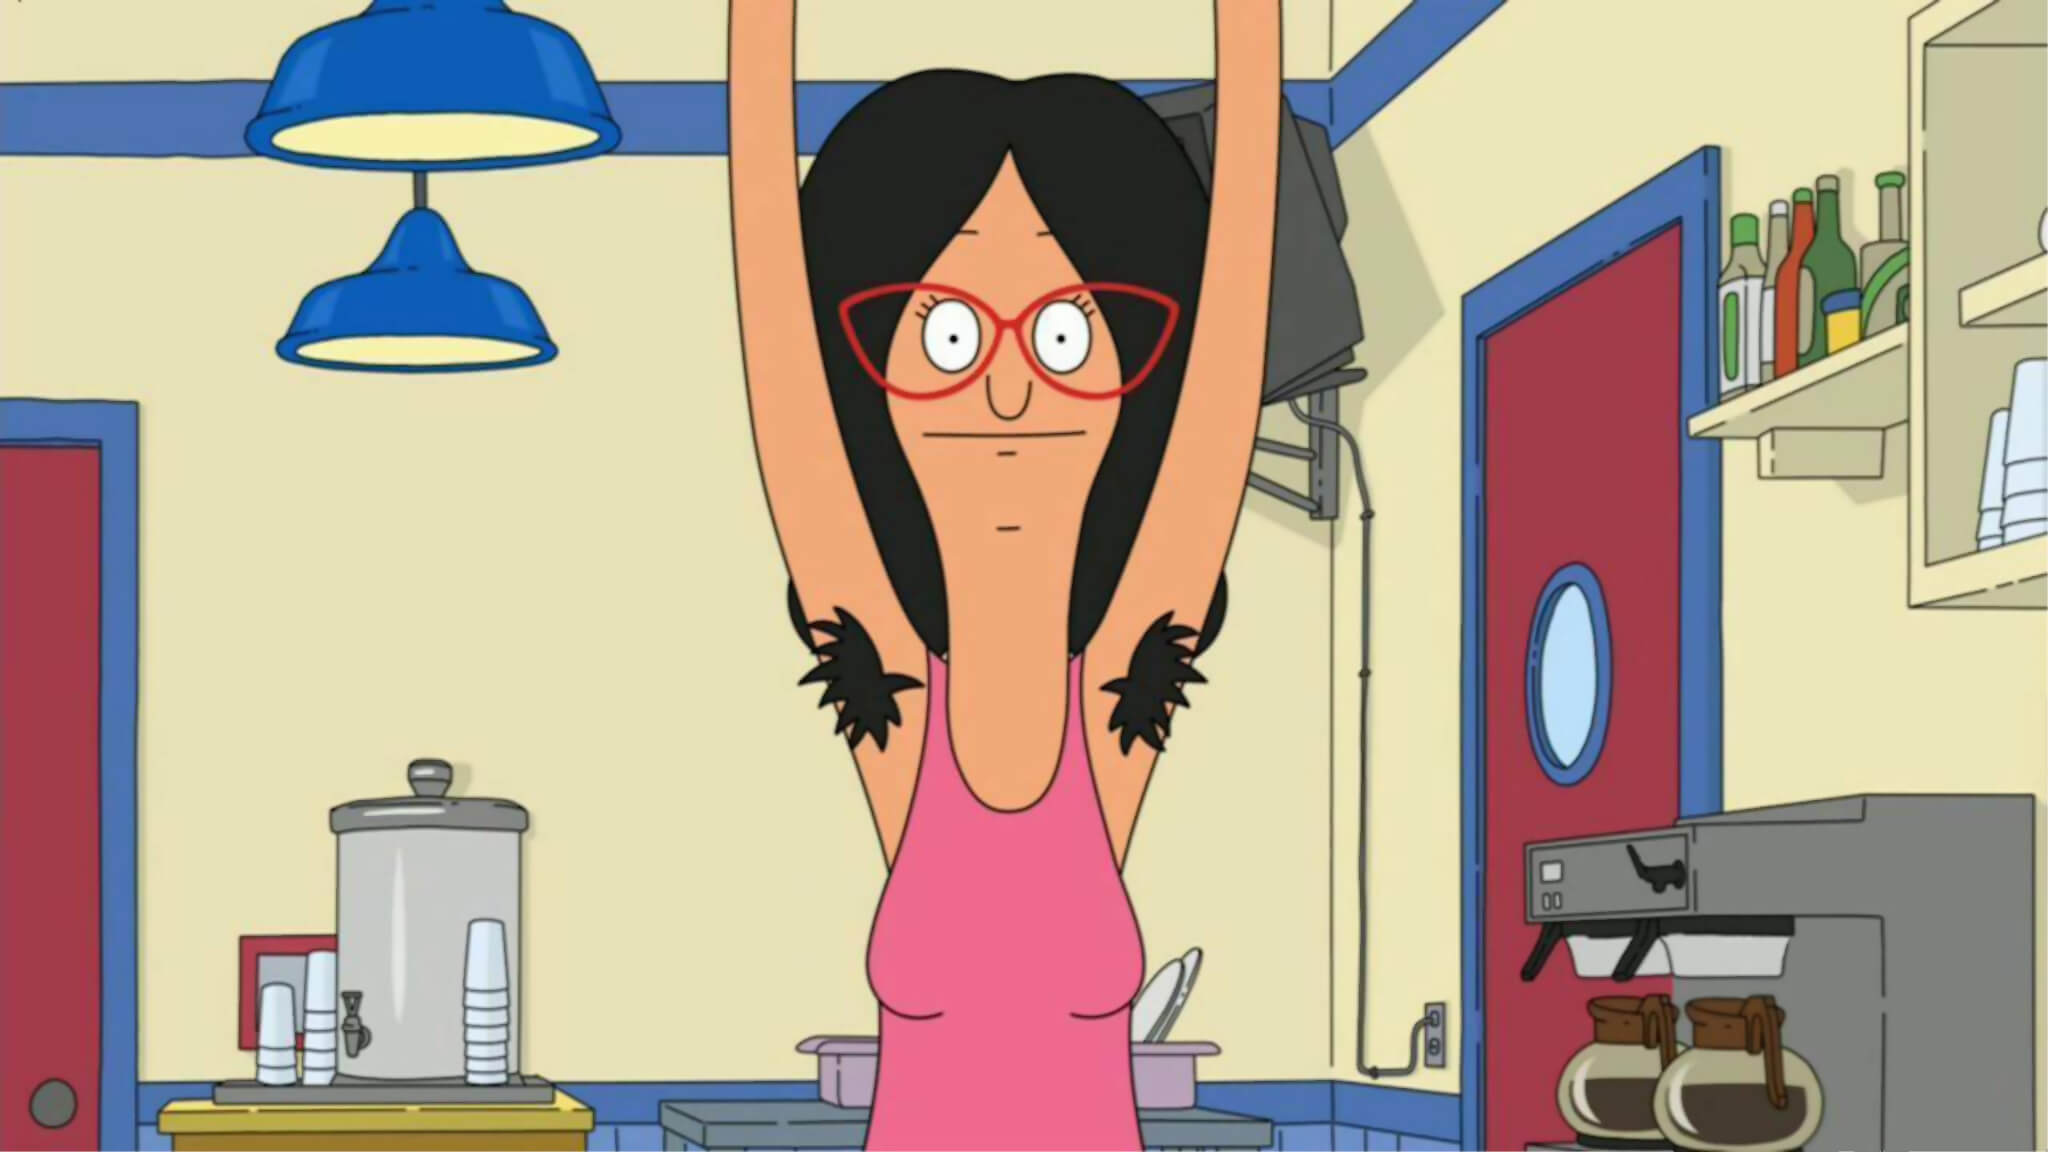 Cartoon Image Of A Woman Showing Her Hairy Armpits